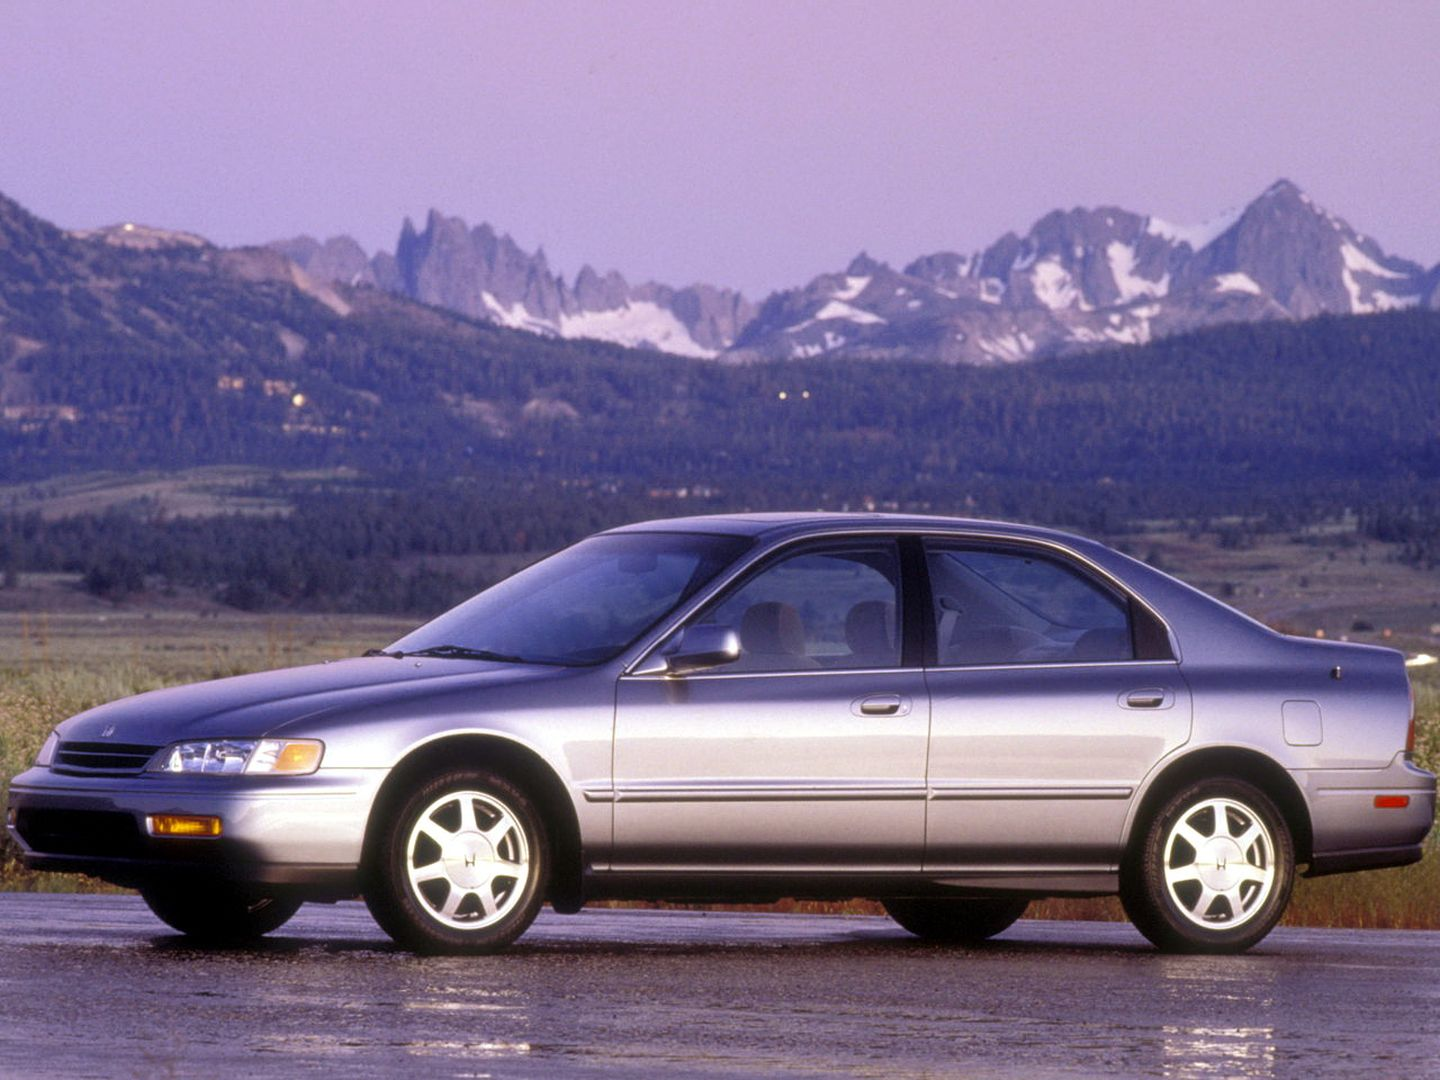 HONDA Accord Sedan US specs & photos - 1997, 1998, 1999, 2000, 2001, 2002 - autoevolution